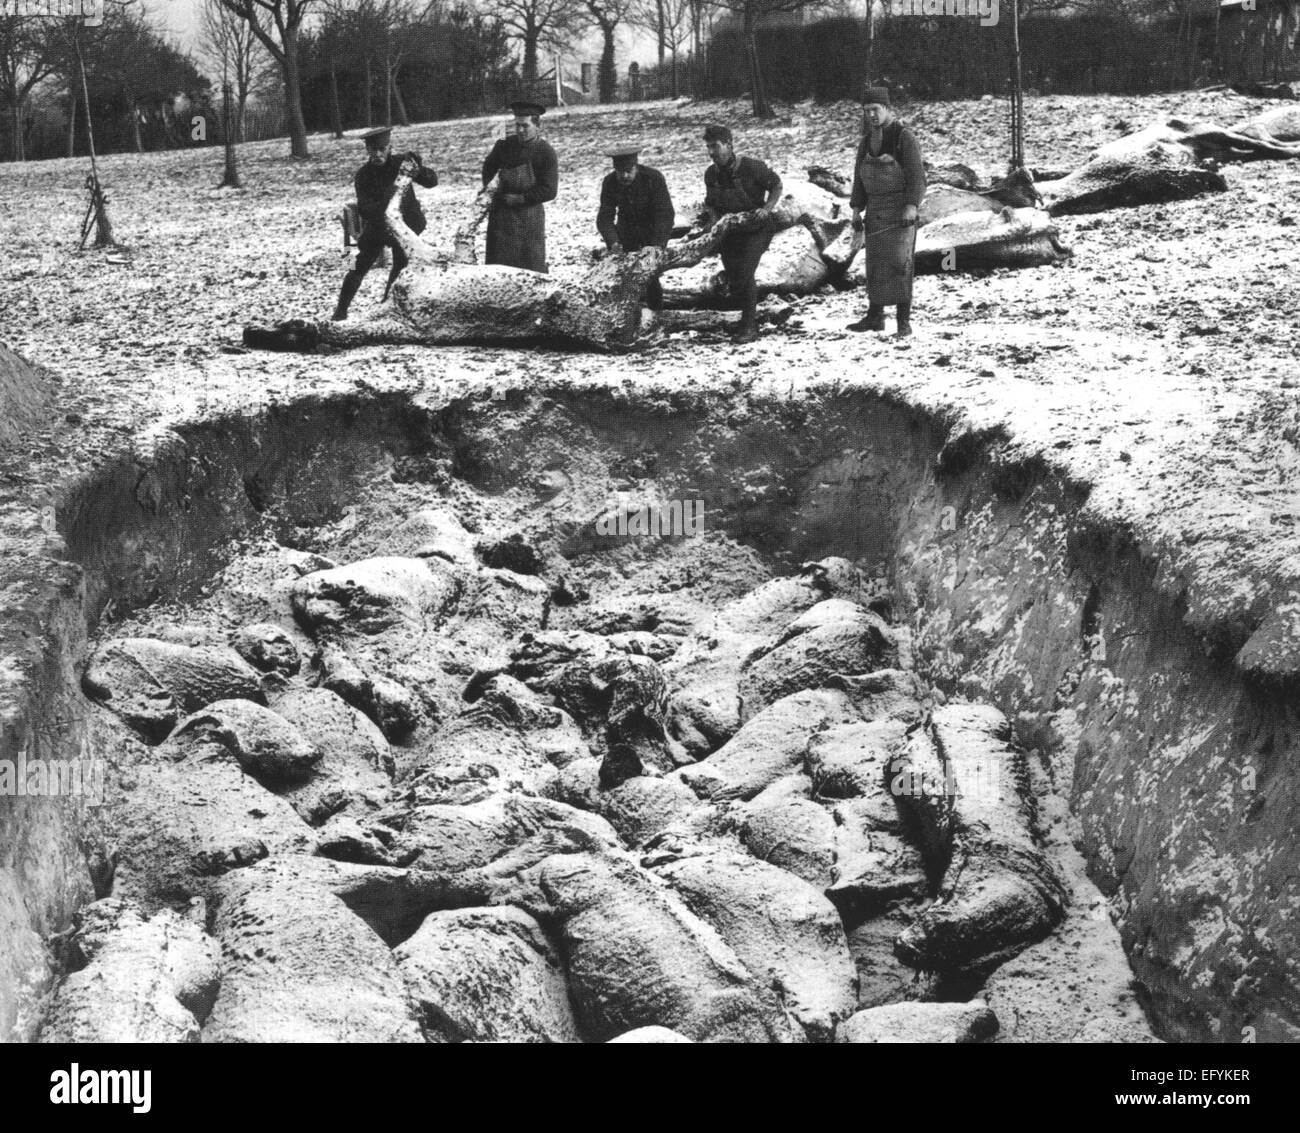 FIRST WORLD WAR  Mass burial of horses in winter 1916 by British soldiers. Location unknown. Photo British Official - Stock Image